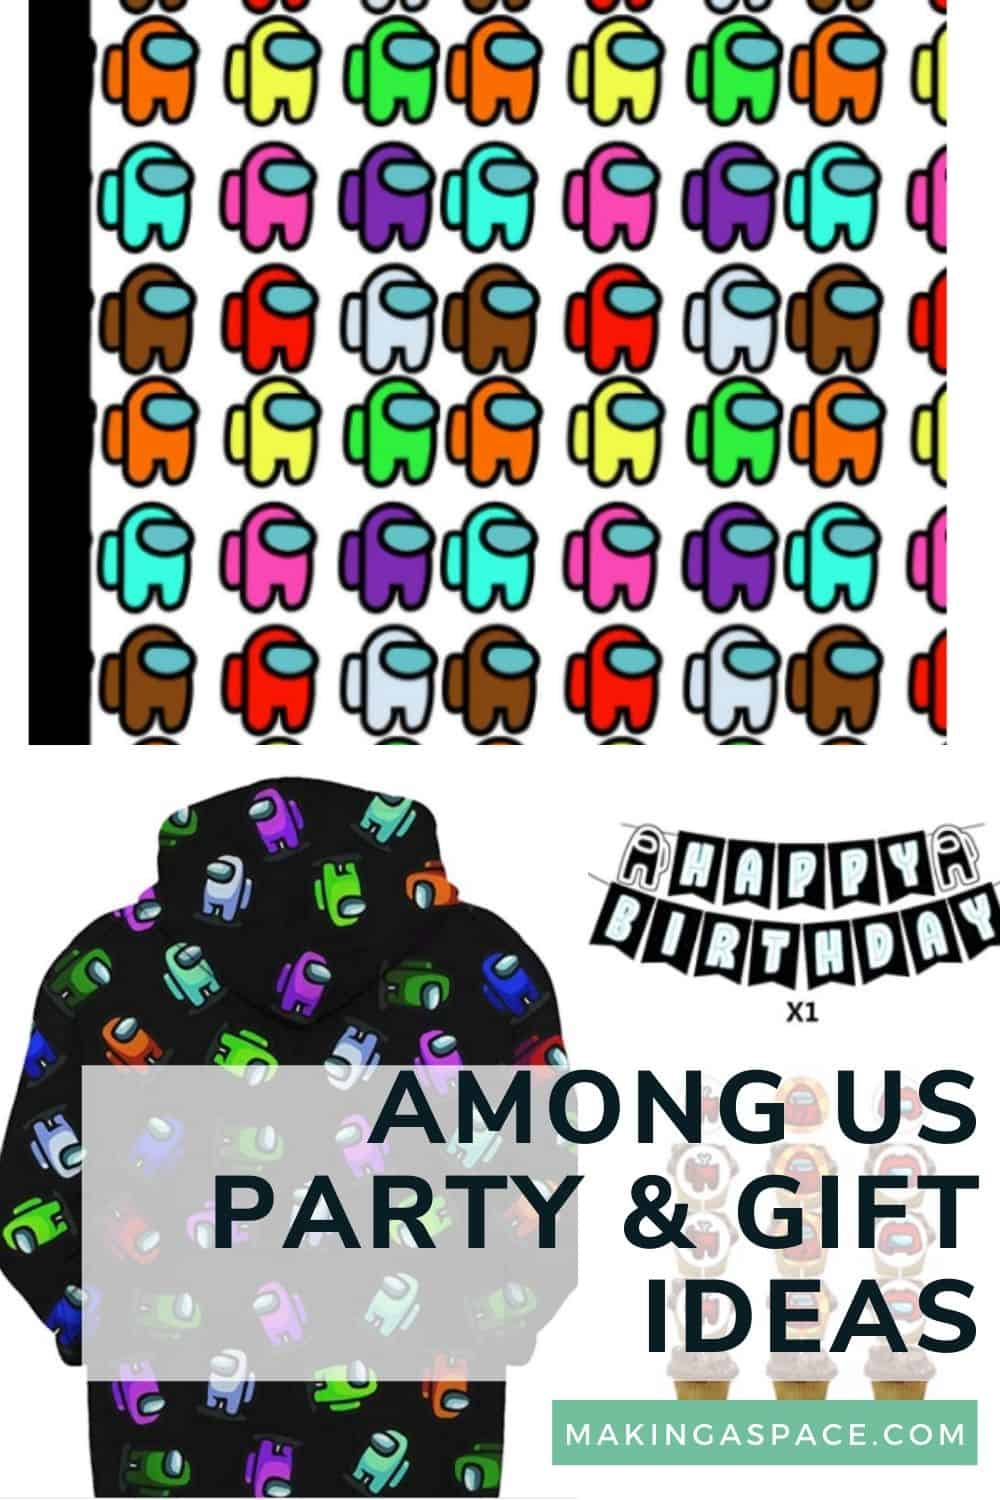 Among us Party and Gift Ideas